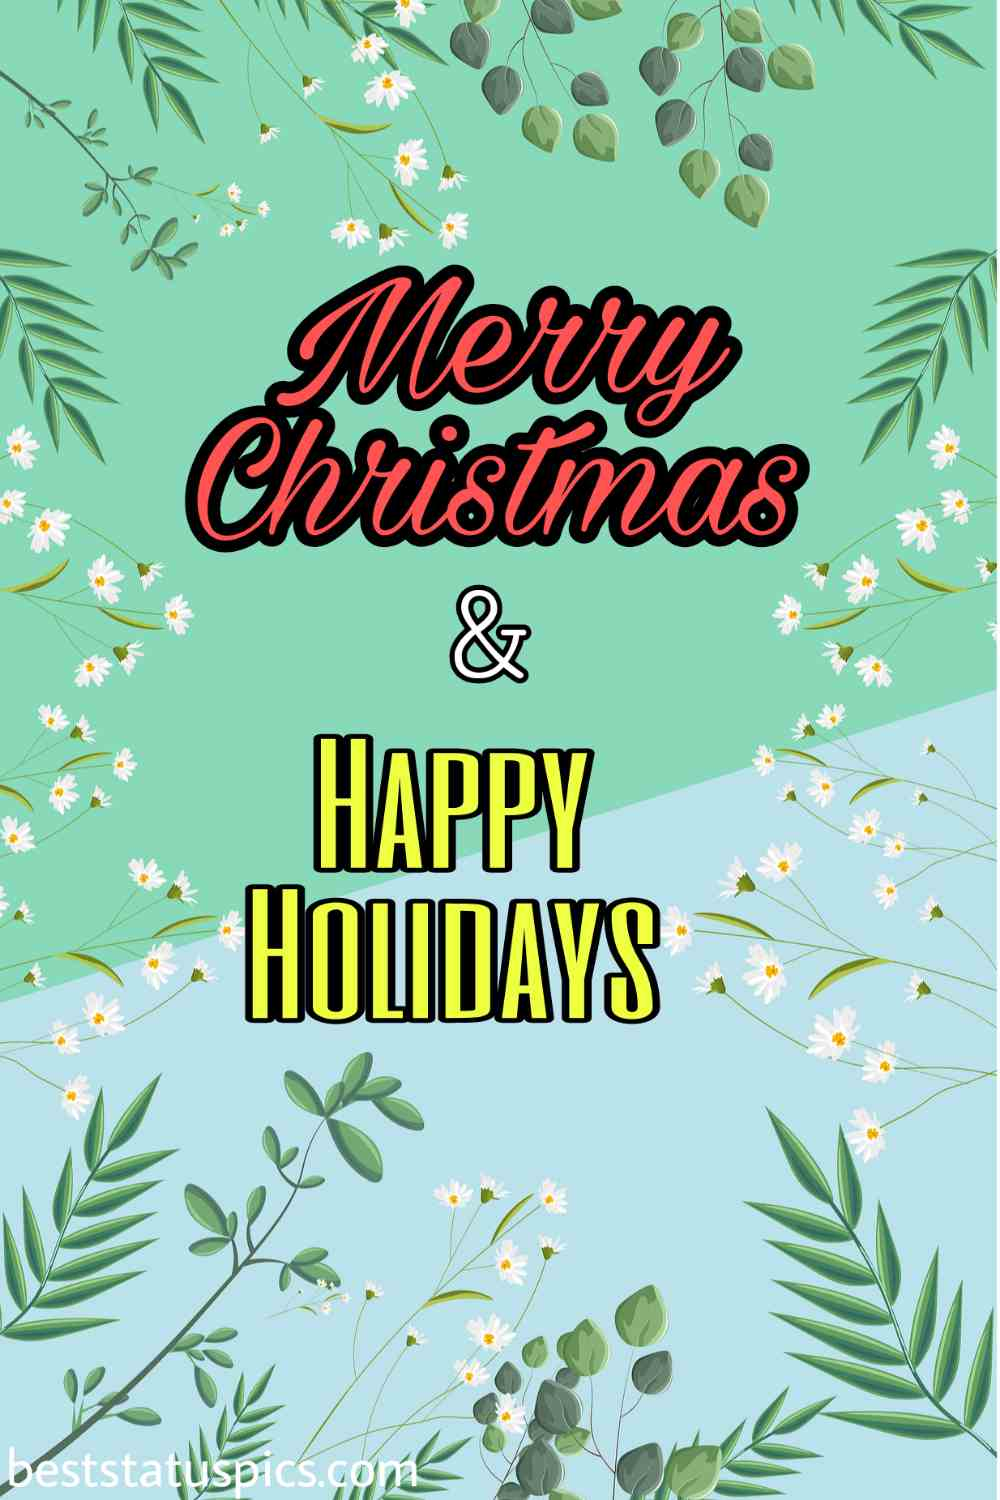 Merry Christmas and Happy Holidays 2022 greetings and cards for Pinterest